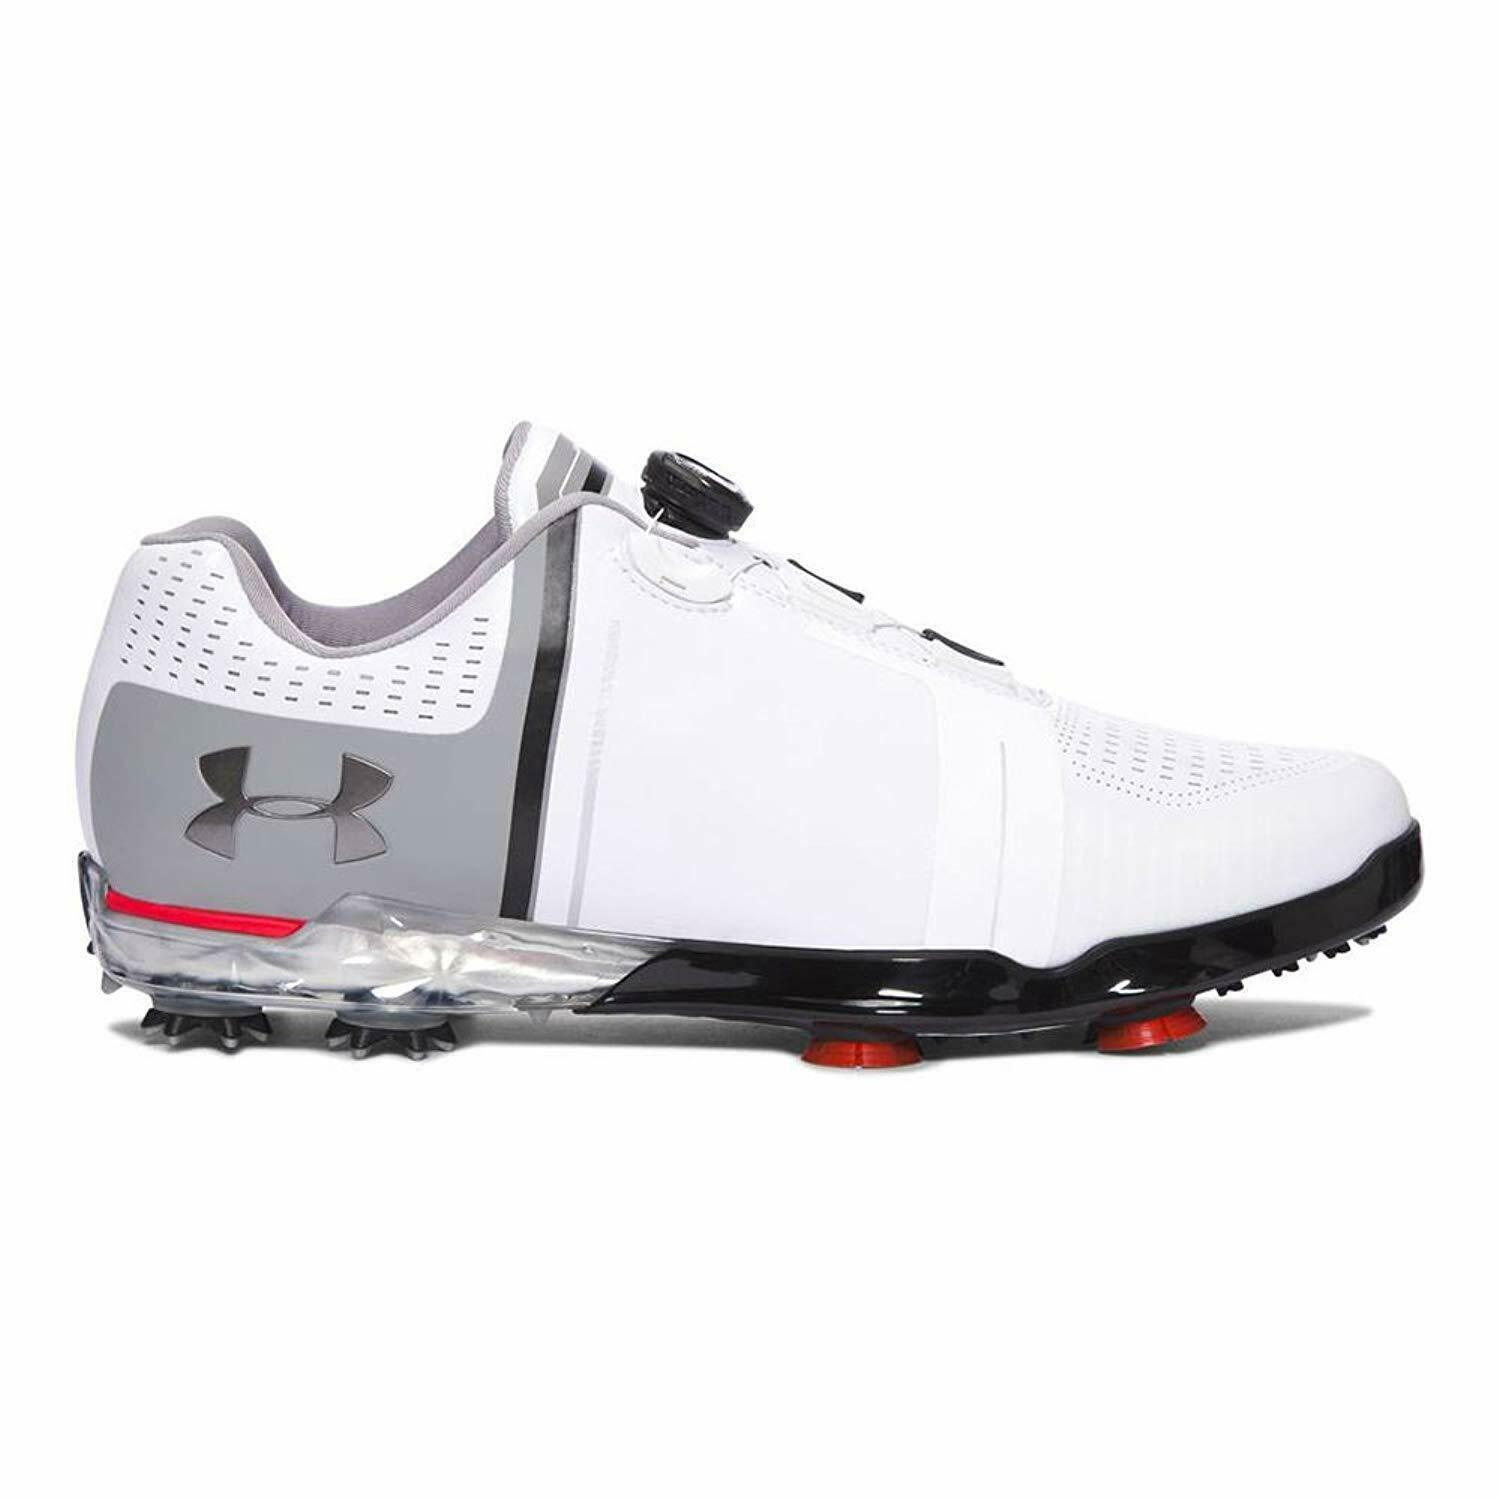 Primary image for Under Armour Spieth One Golf Shoes White 1299226-108 Mens Size 13 E Wide